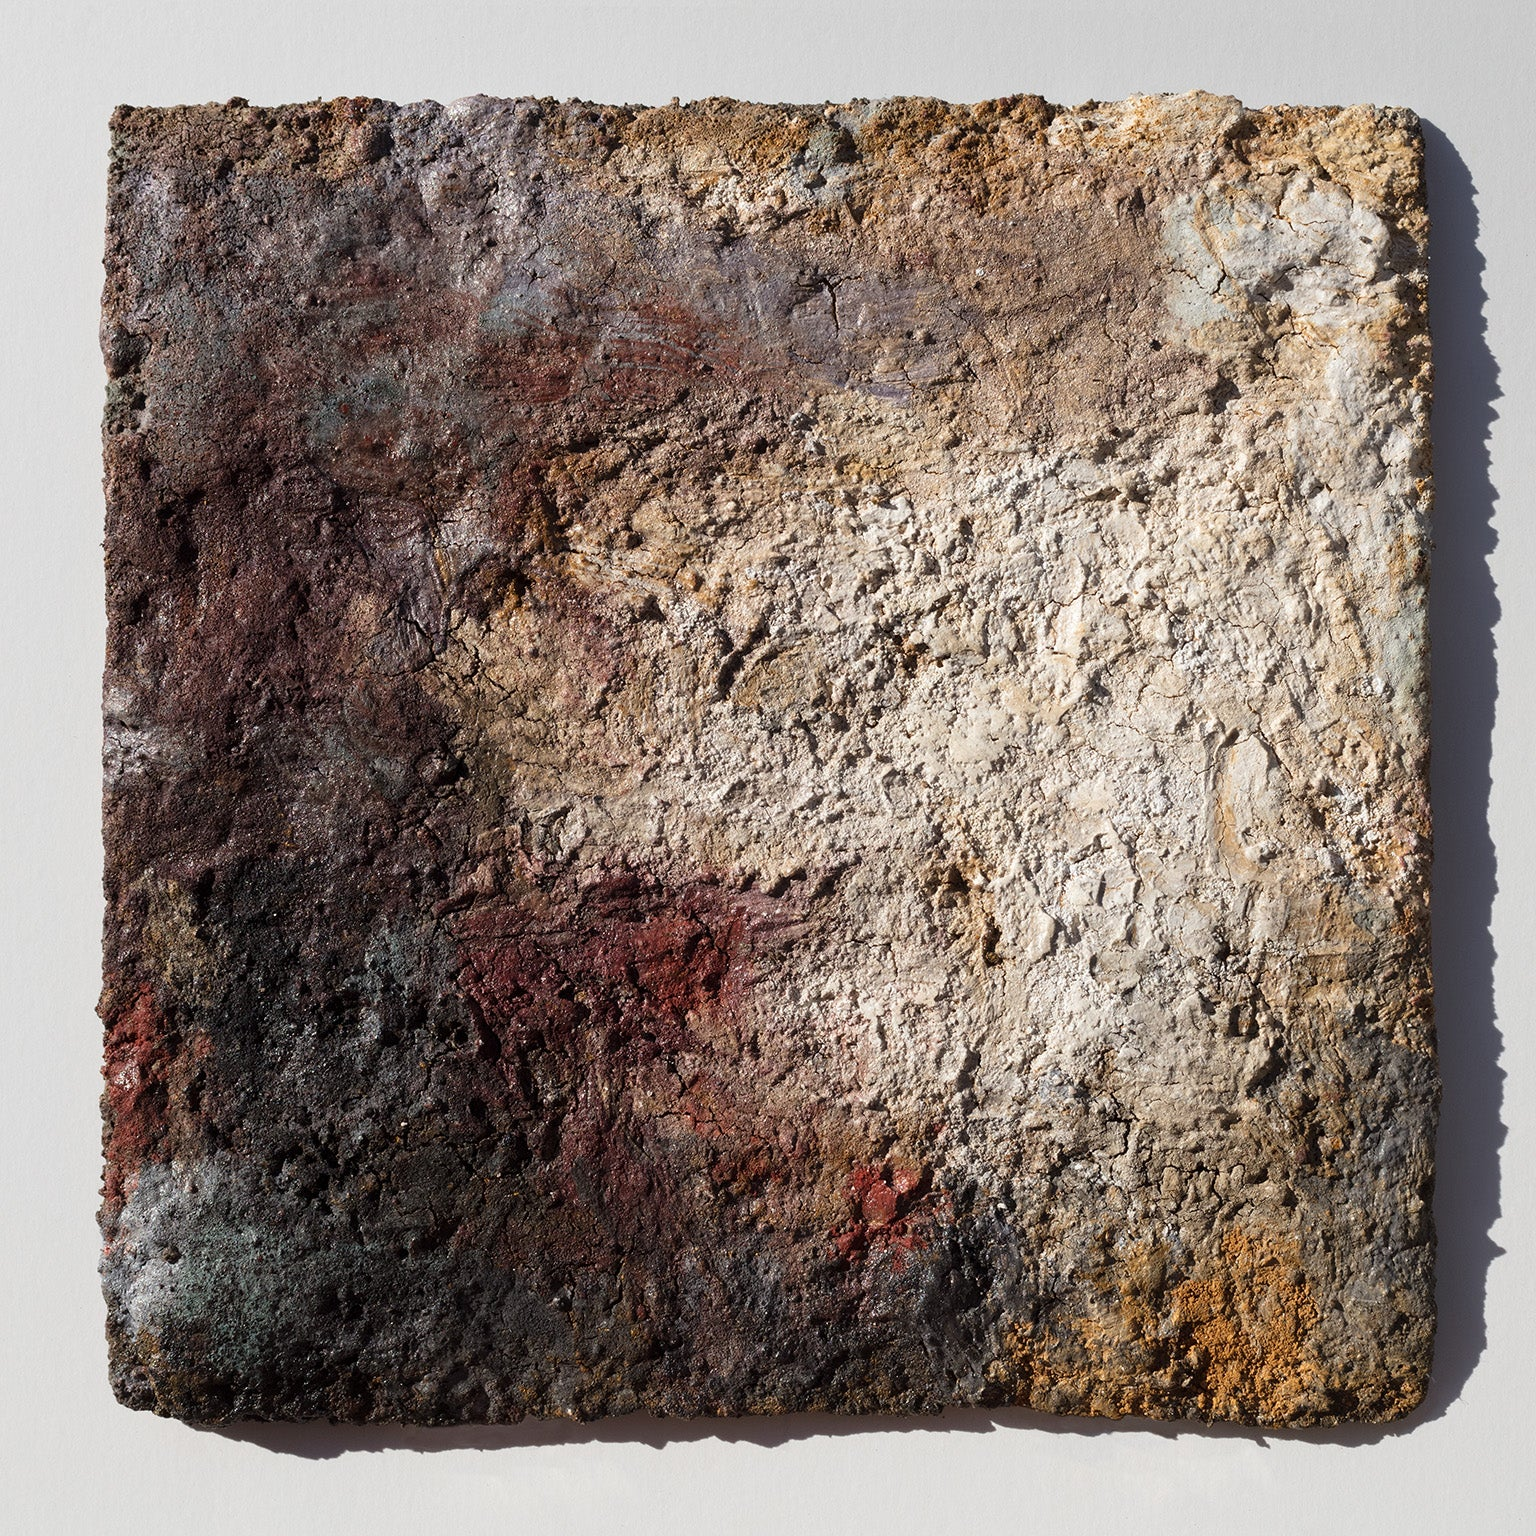 Terra Bruciata (Scorched Earth) - Small Abstract Painting with Earth Colors